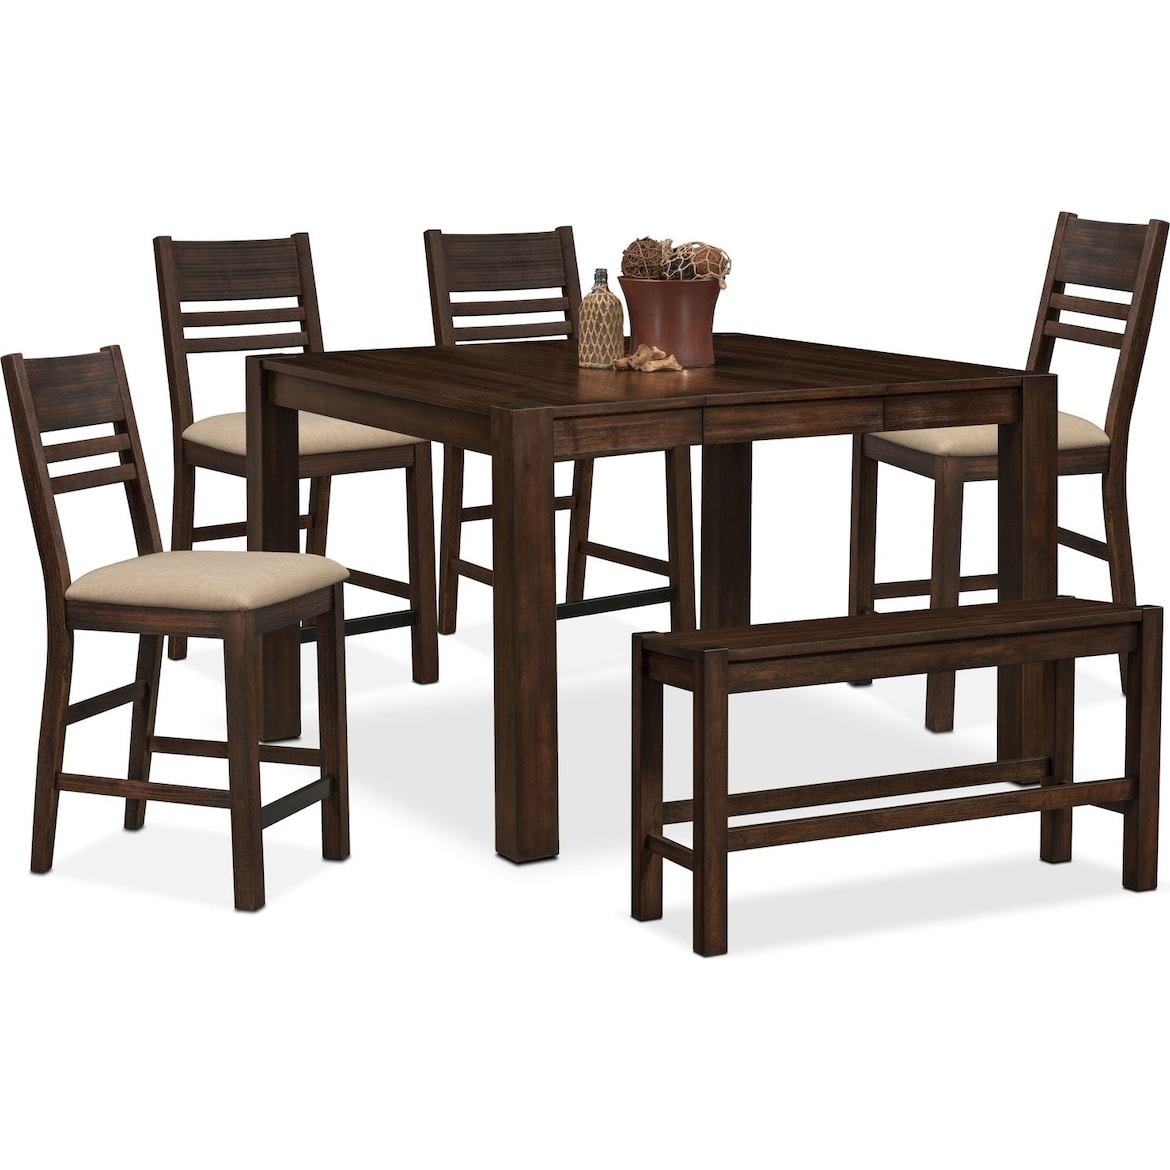 Tribeca Counter Height Table 4 Side Chairs And Bench